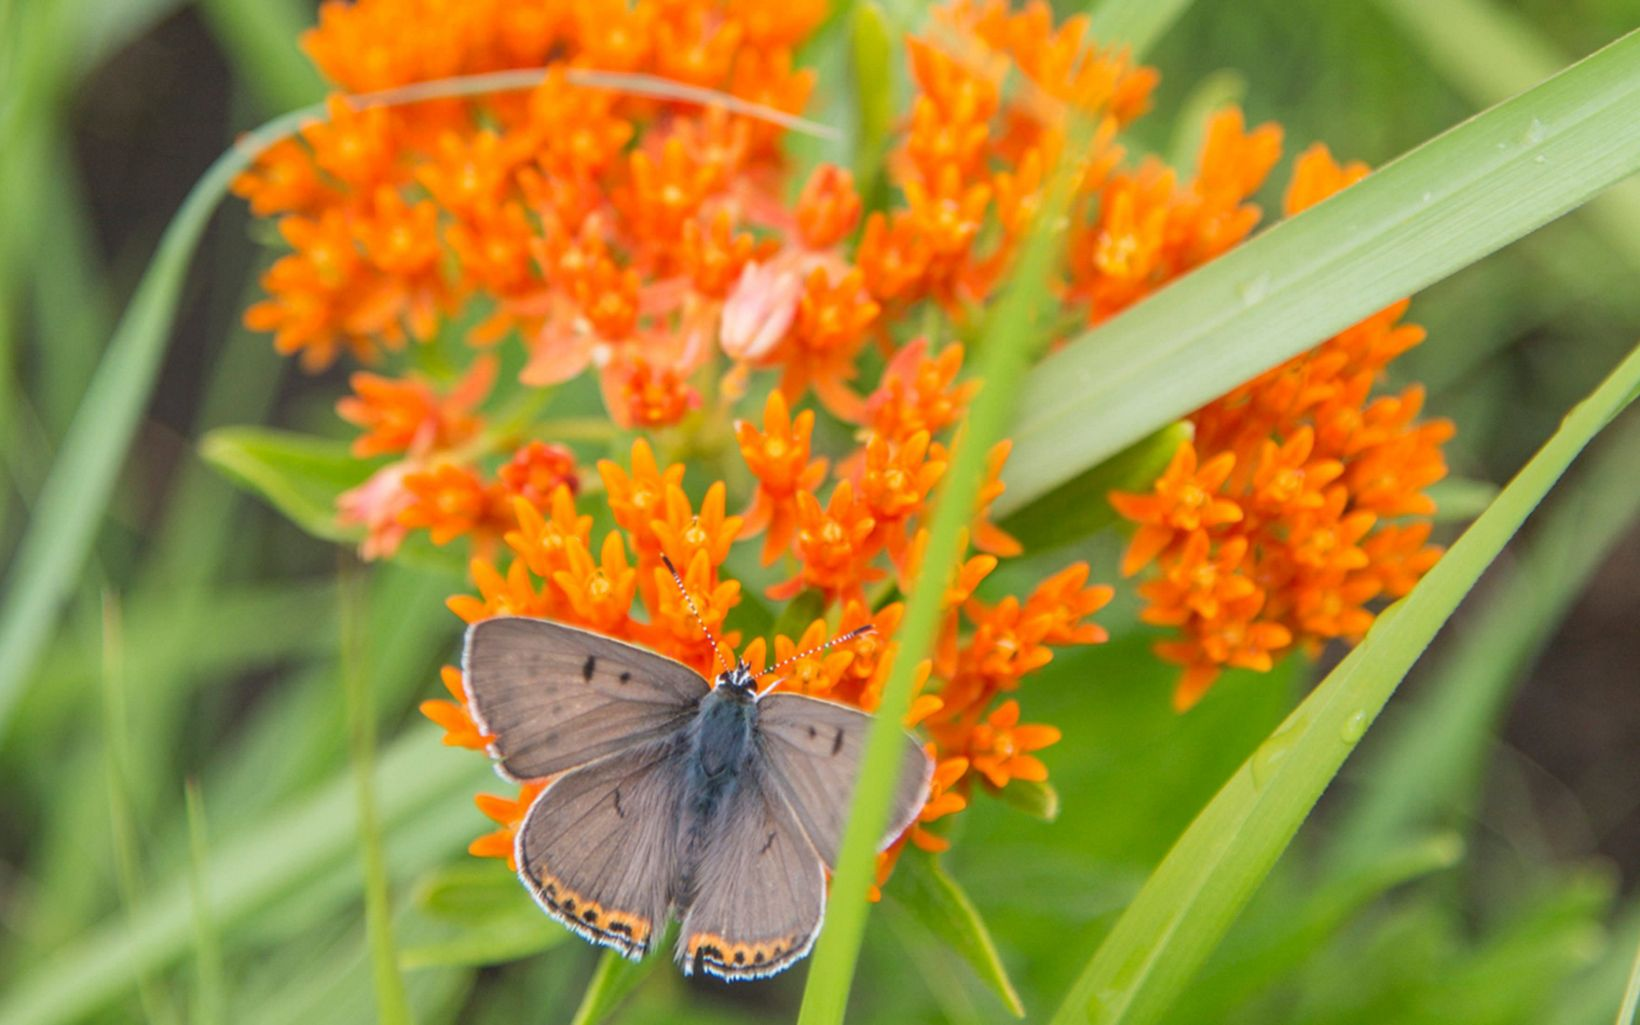 Butterfly feeding on butterfly milkweed plant.